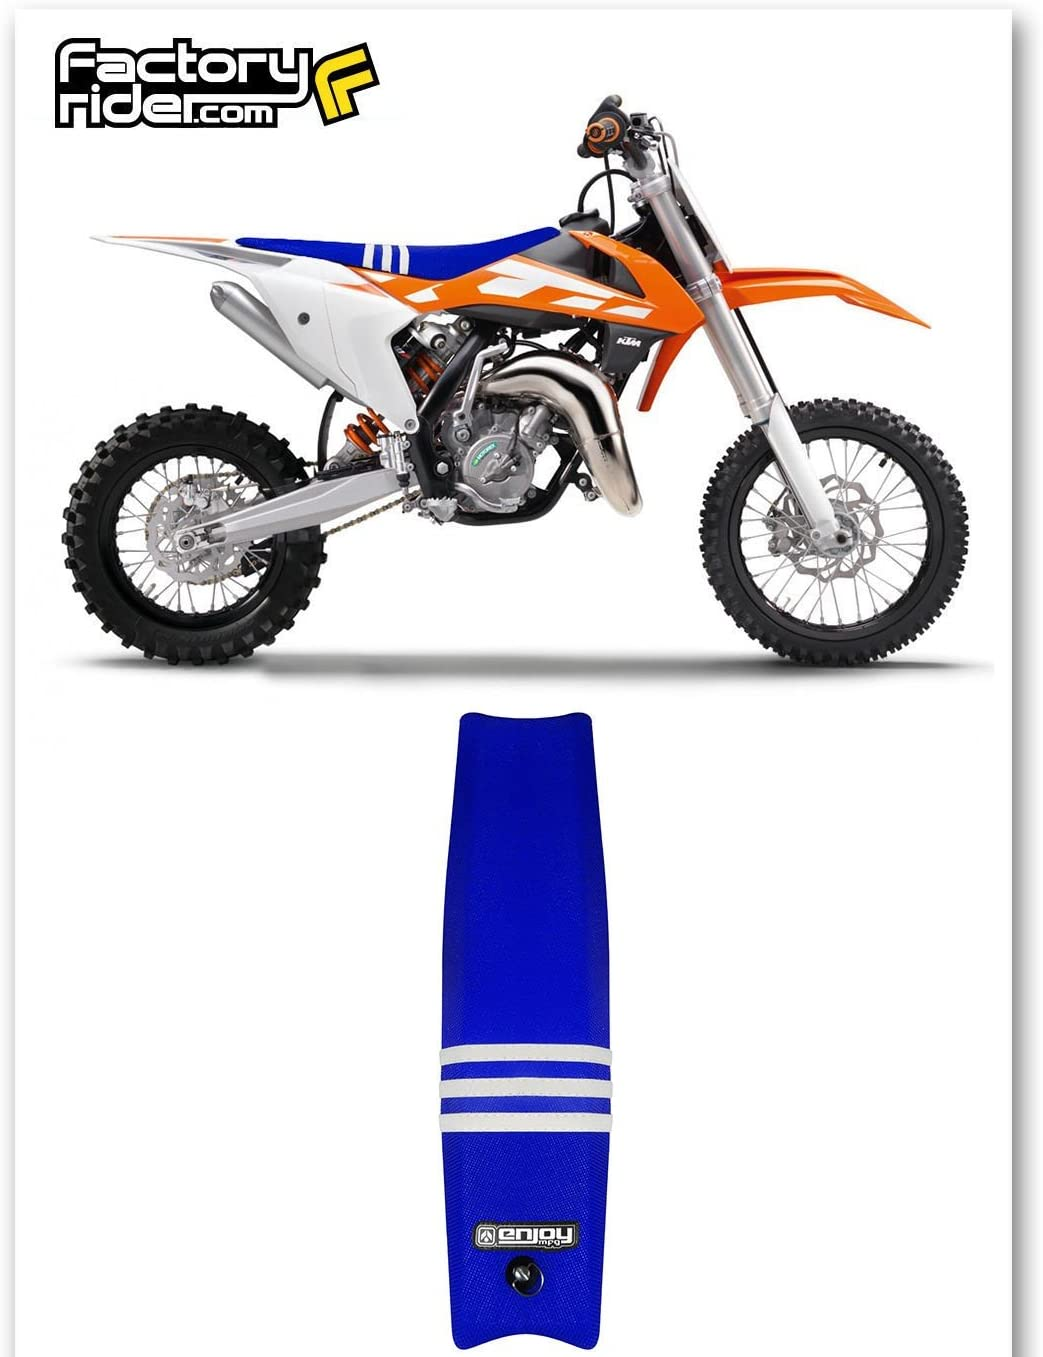 Team Issue TLD Enjoy MFG Seat Cover Compatible Fit for 2009-2015 KTM SX 65 All Blue//Three White Stripes Seat Cover